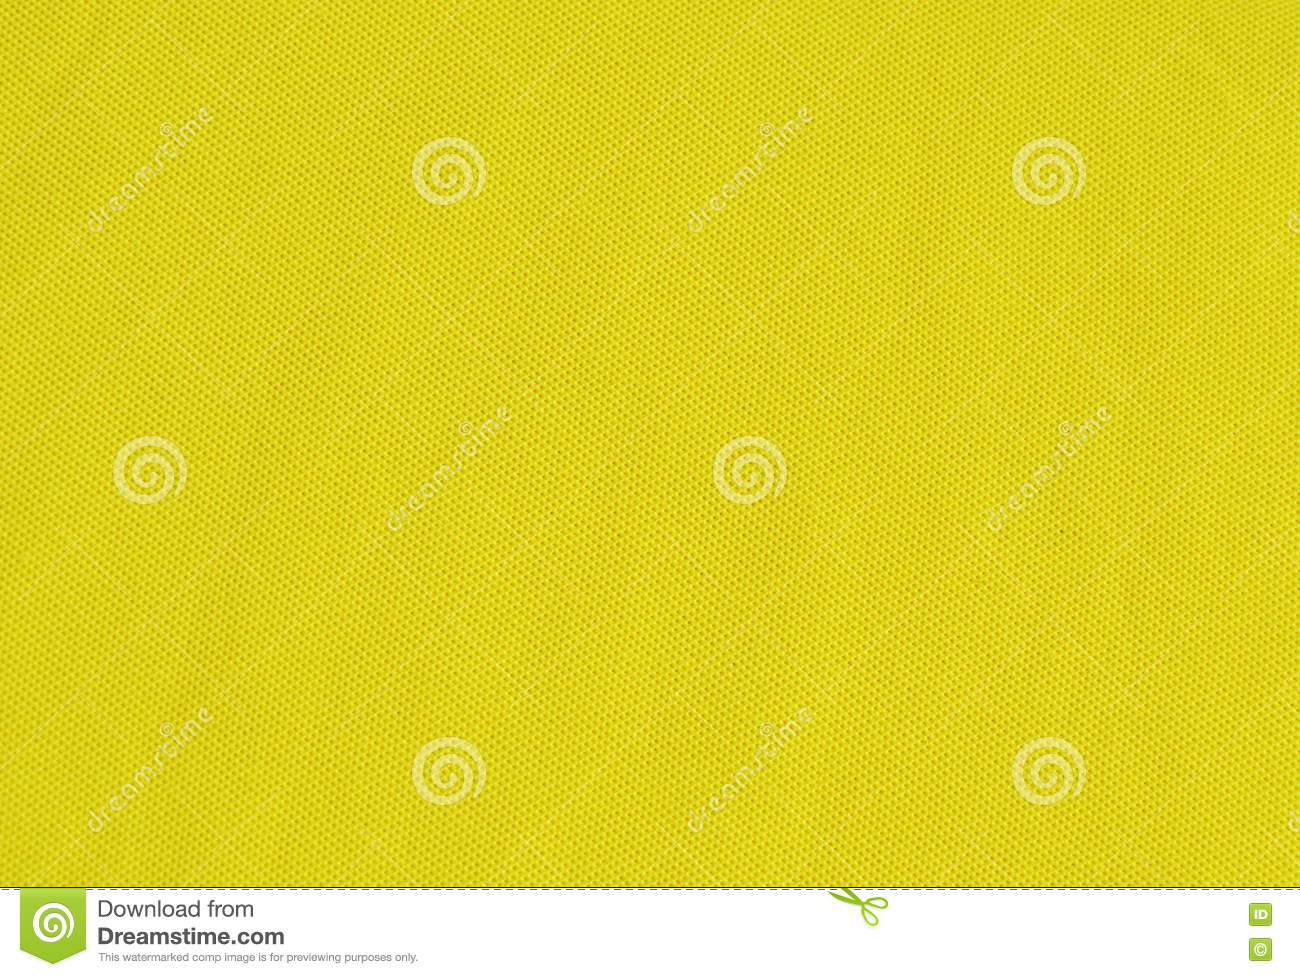 Background image stretch - Background Fabric Stretch